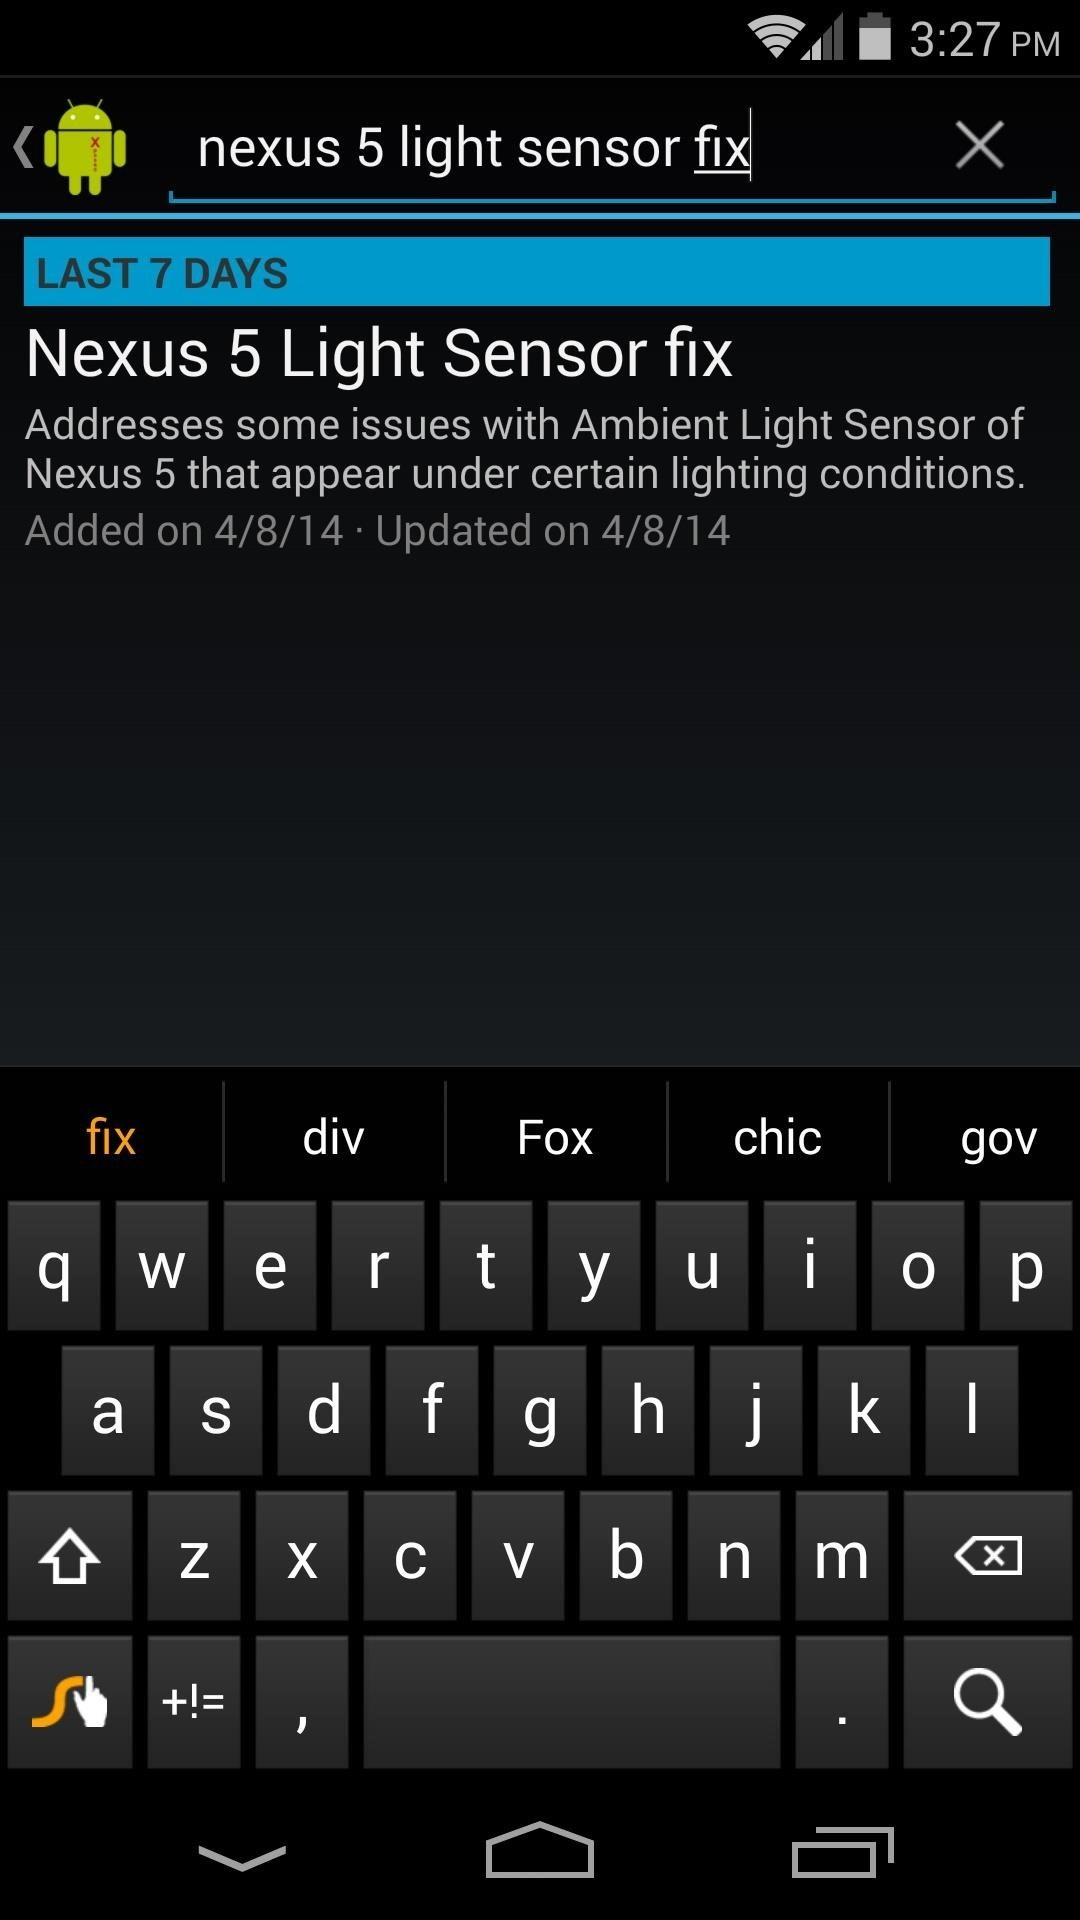 How to Fix the Random Auto Brightness Spikes on Your Nexus 5